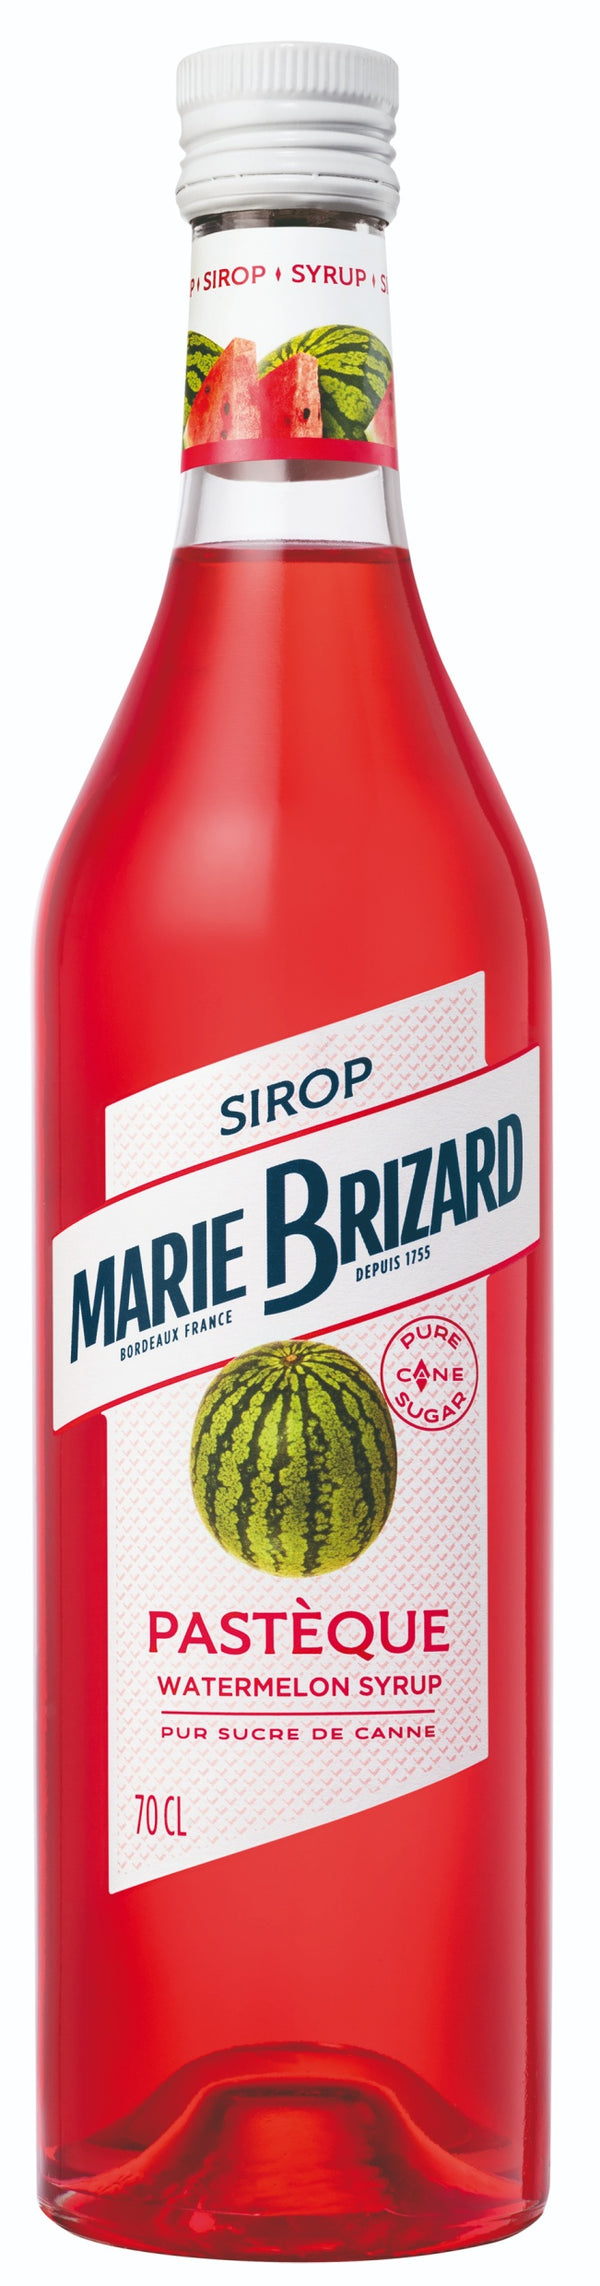 MARIE BRIZARD SIROP PASTEQUE 70CL